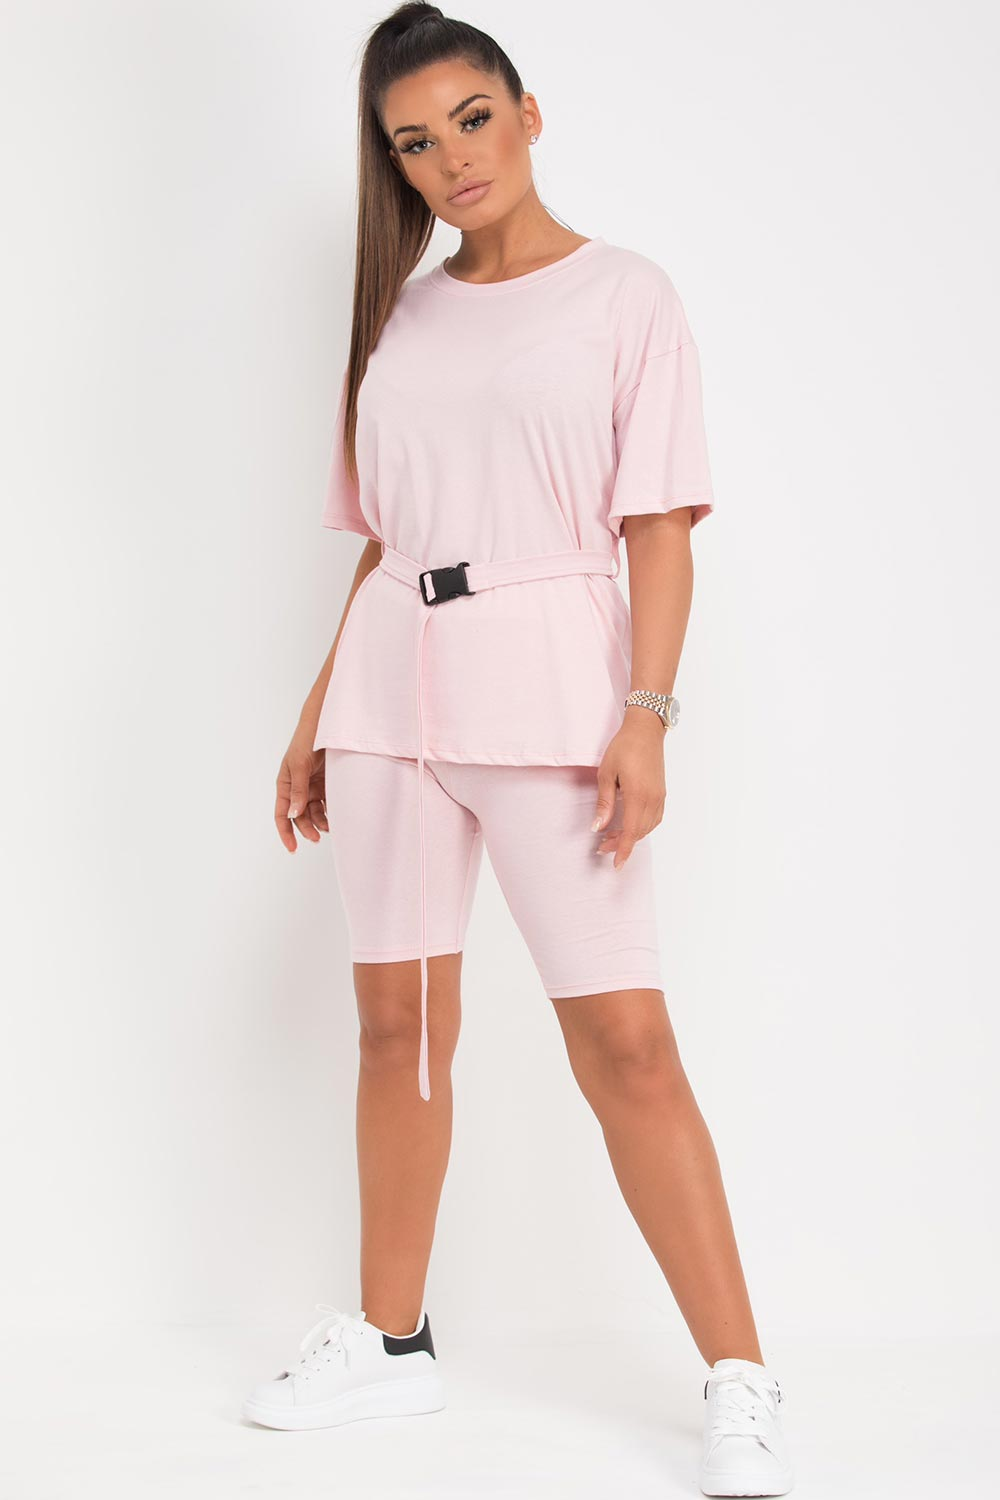 pink cycling shorts top two piece set with belt